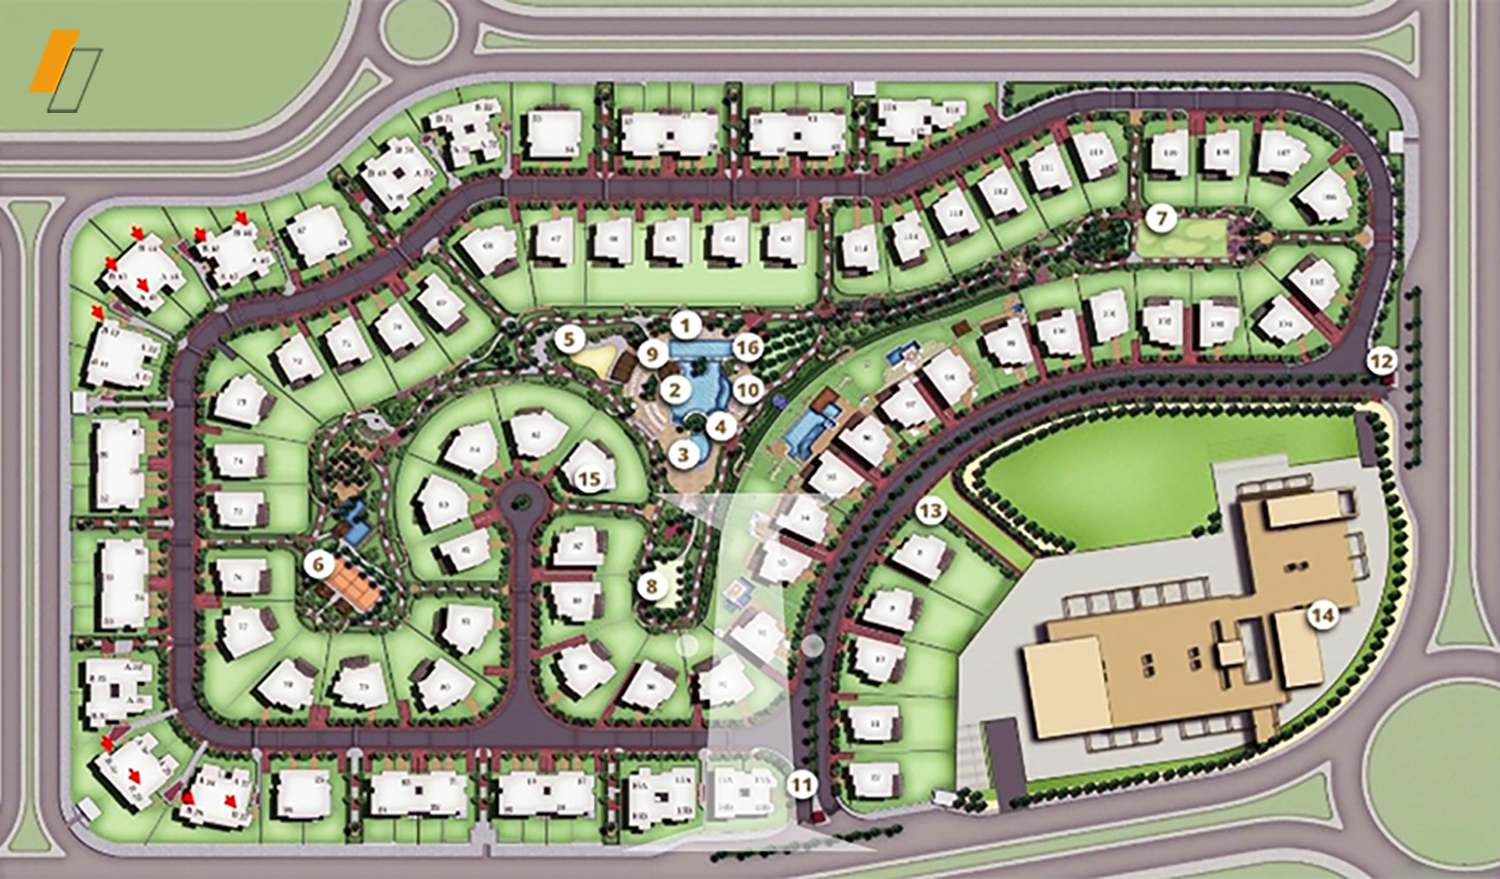 La Nuova Vista - Master plan image - Flash property